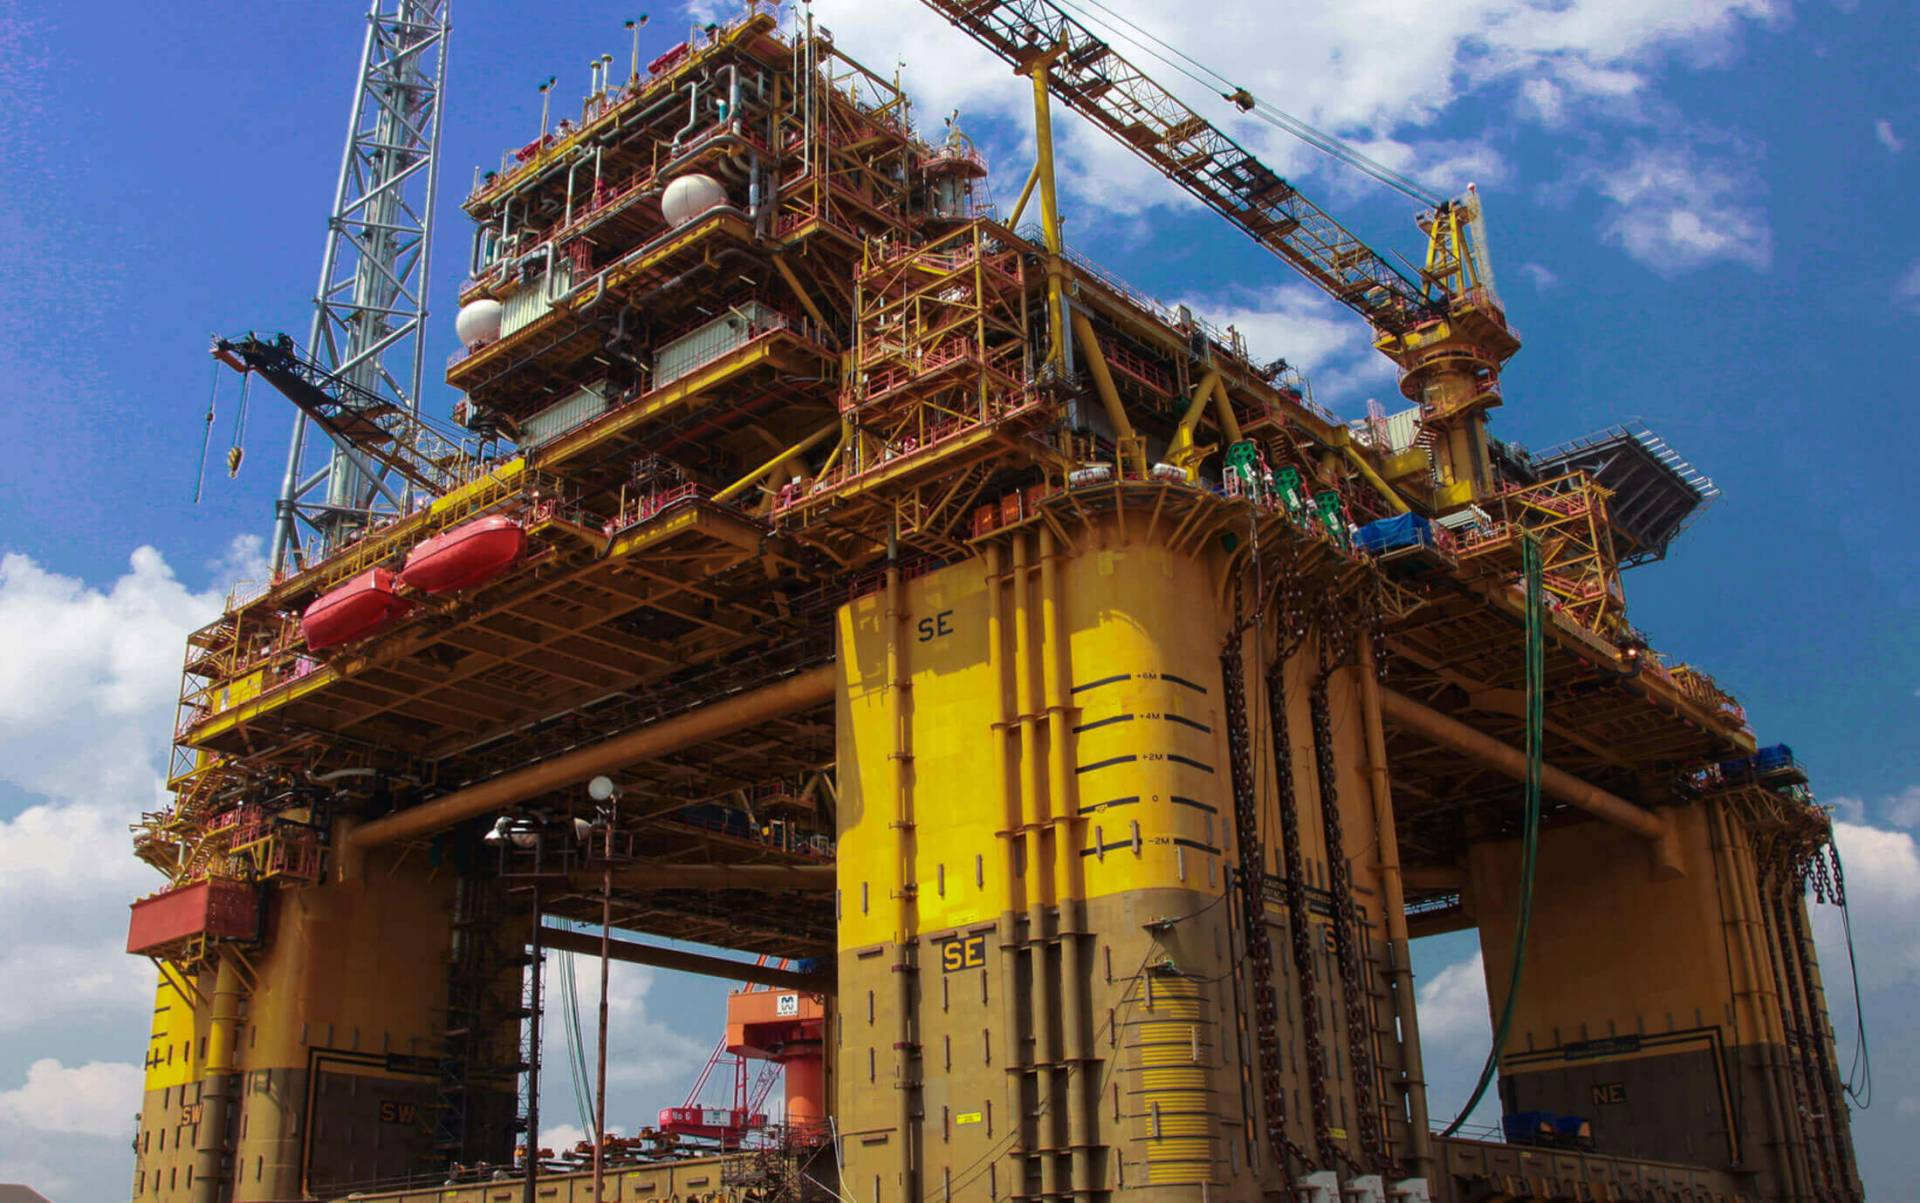 Malaysia Marine and Heavy Engineering Holdings Bhd (MMHE) has secured a contract from Petronas Carigali Sdn Bhd for the Bekok oil project and another from Hess Exploration and Production Malaysia B.V.